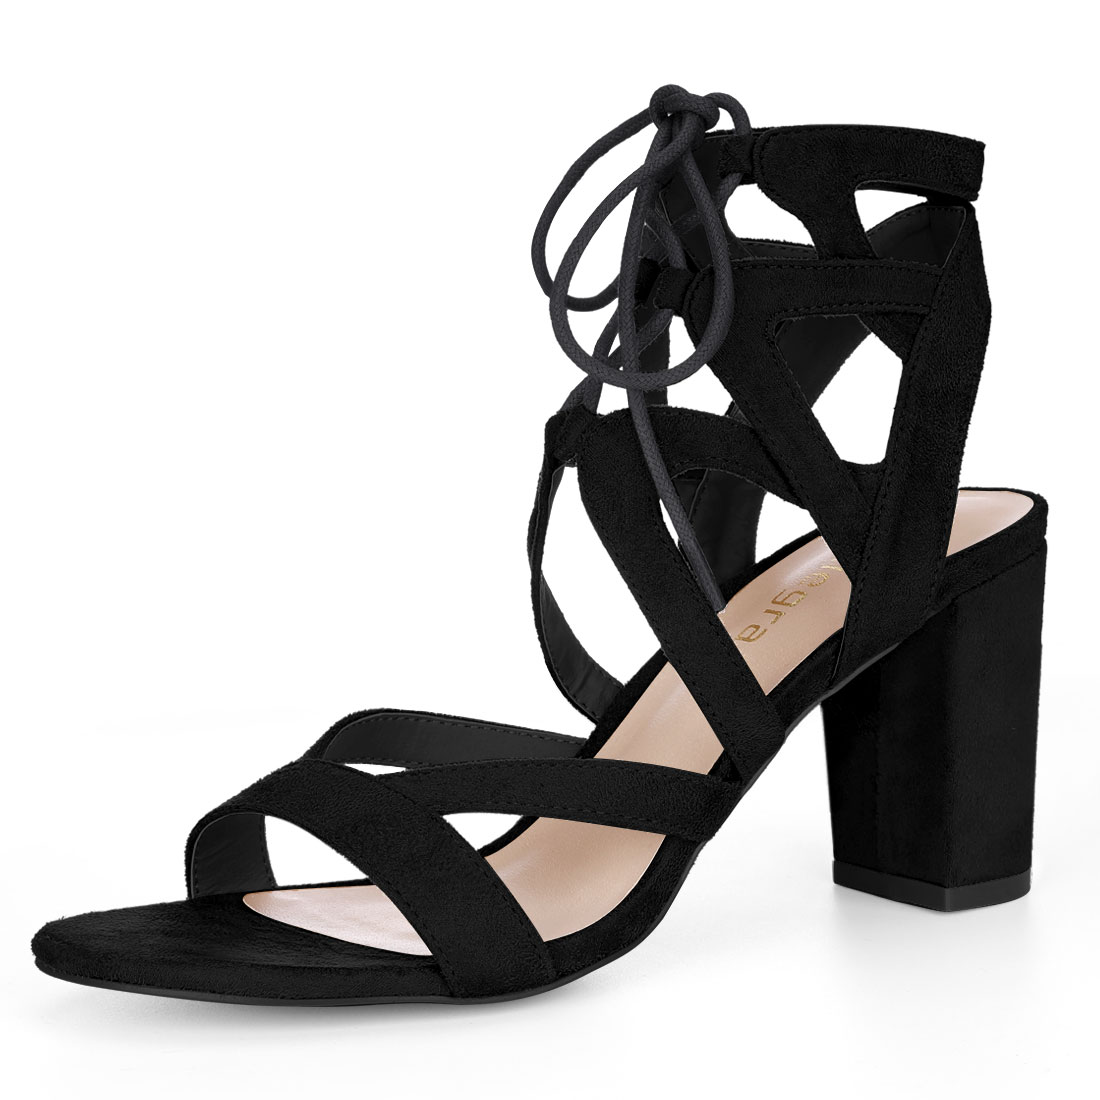 Allegra K Women Cutout Strappy Chunky Heel Lace-Up Sandals Black US 7.5